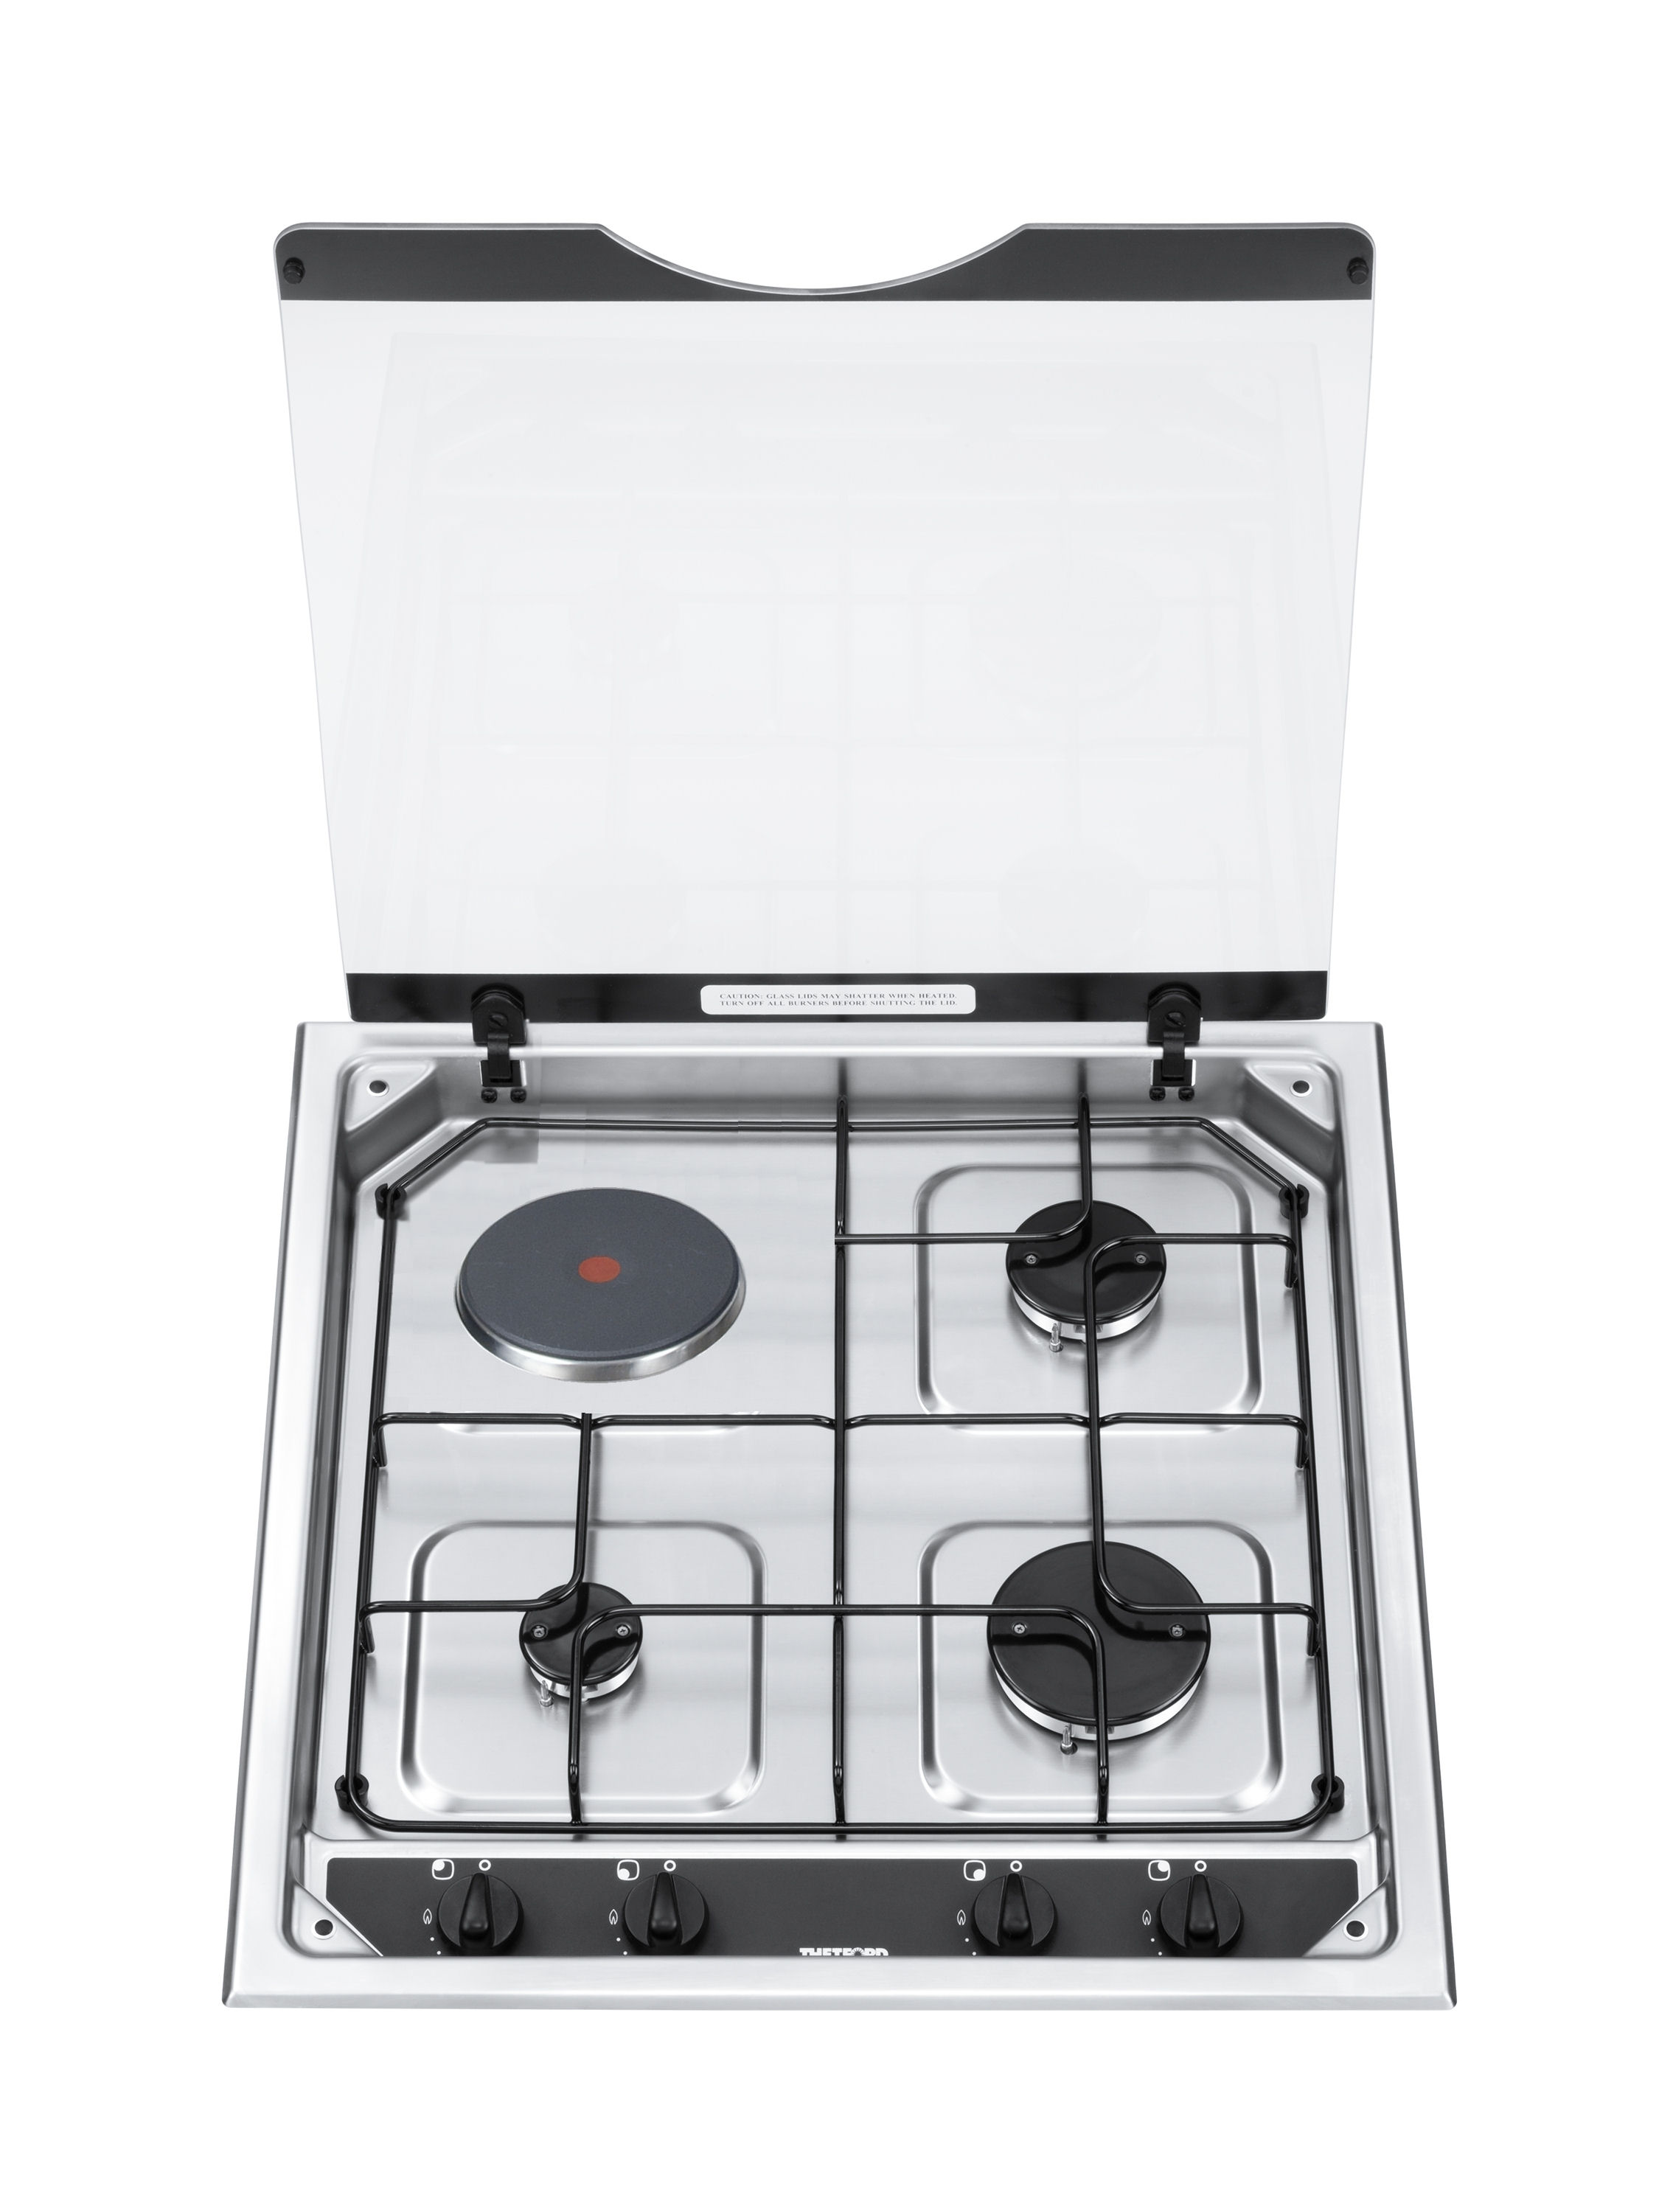 amazing Marine Kitchen Appliances #8: Hob Linear 170